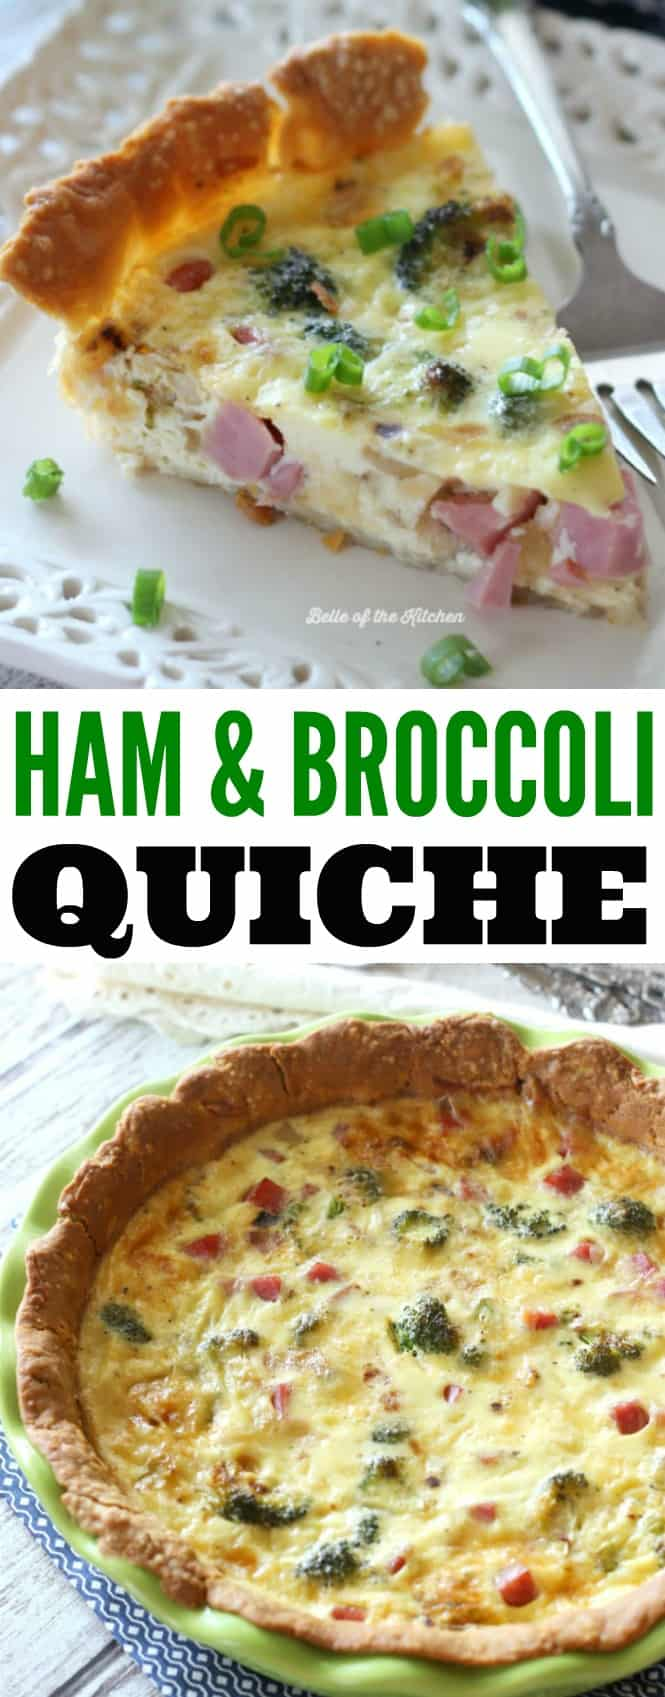 This Ham and Broccoli Quiche with Gouda is the perfect warm breakfast during the holiday season. Made with creamy and delicious gouda cheese, this is a breakfast worth waking up for!